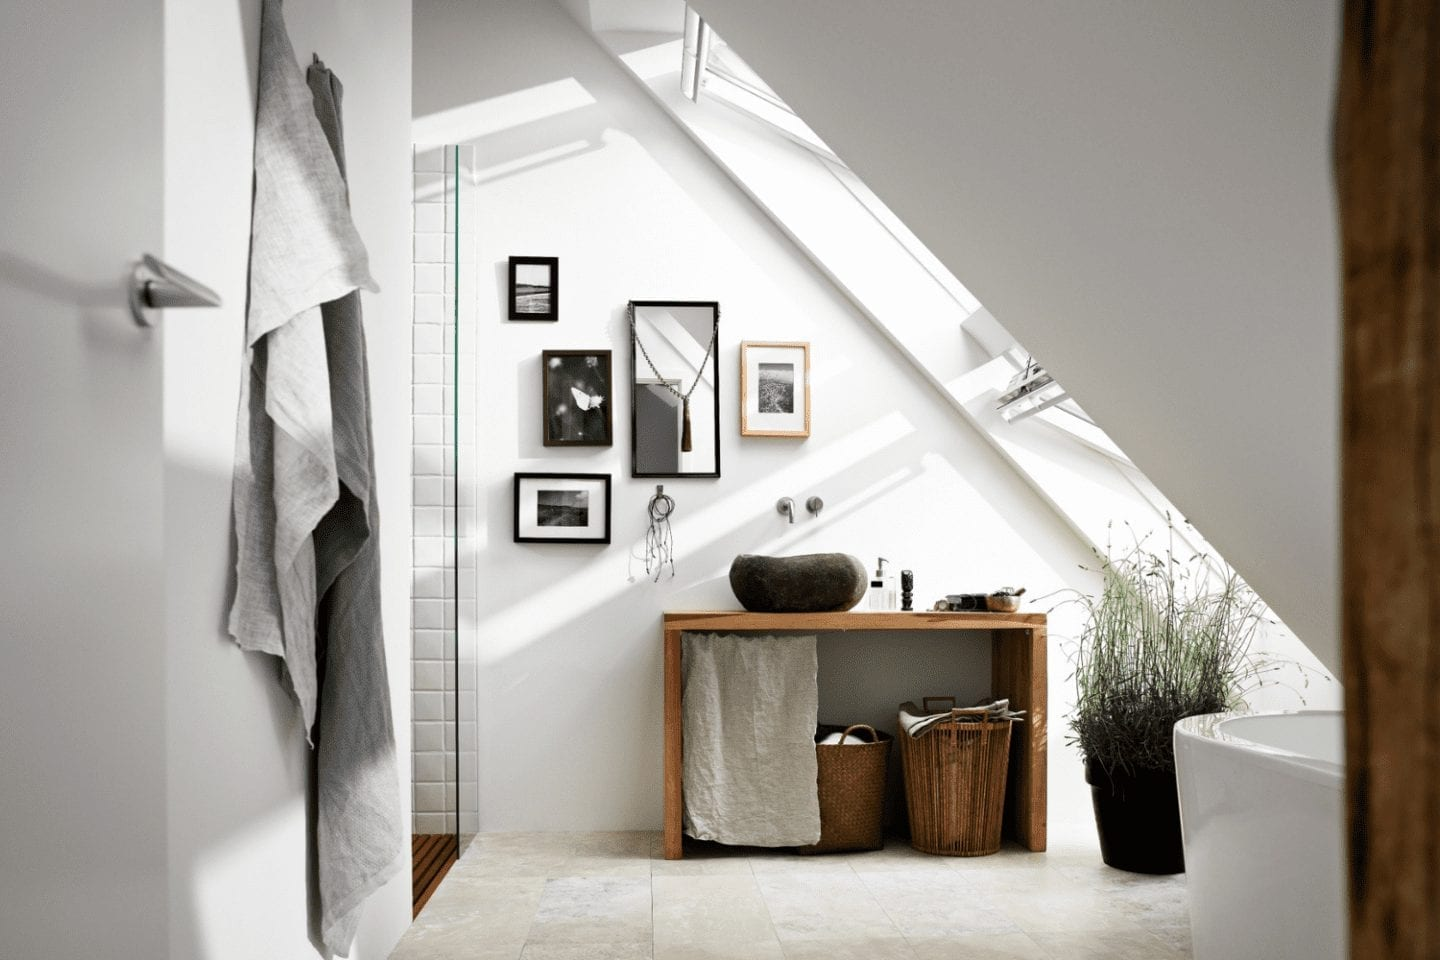 Loft bathroom built into the eaves of a loft conversion with roof windows